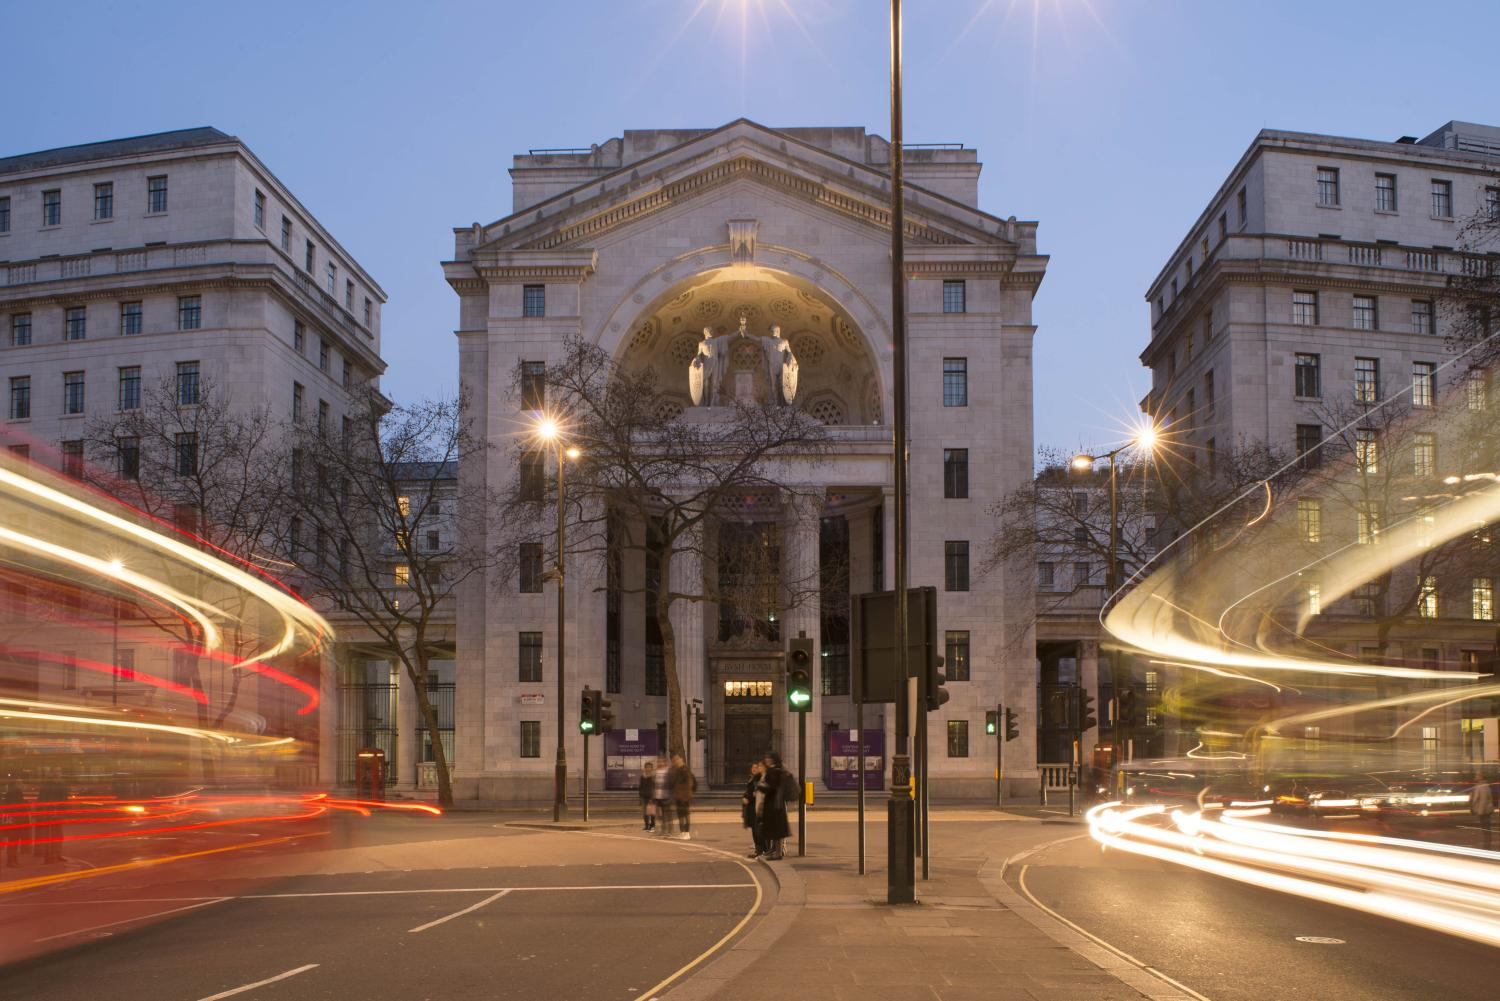 Bush House street view - Image credit Nick Wood